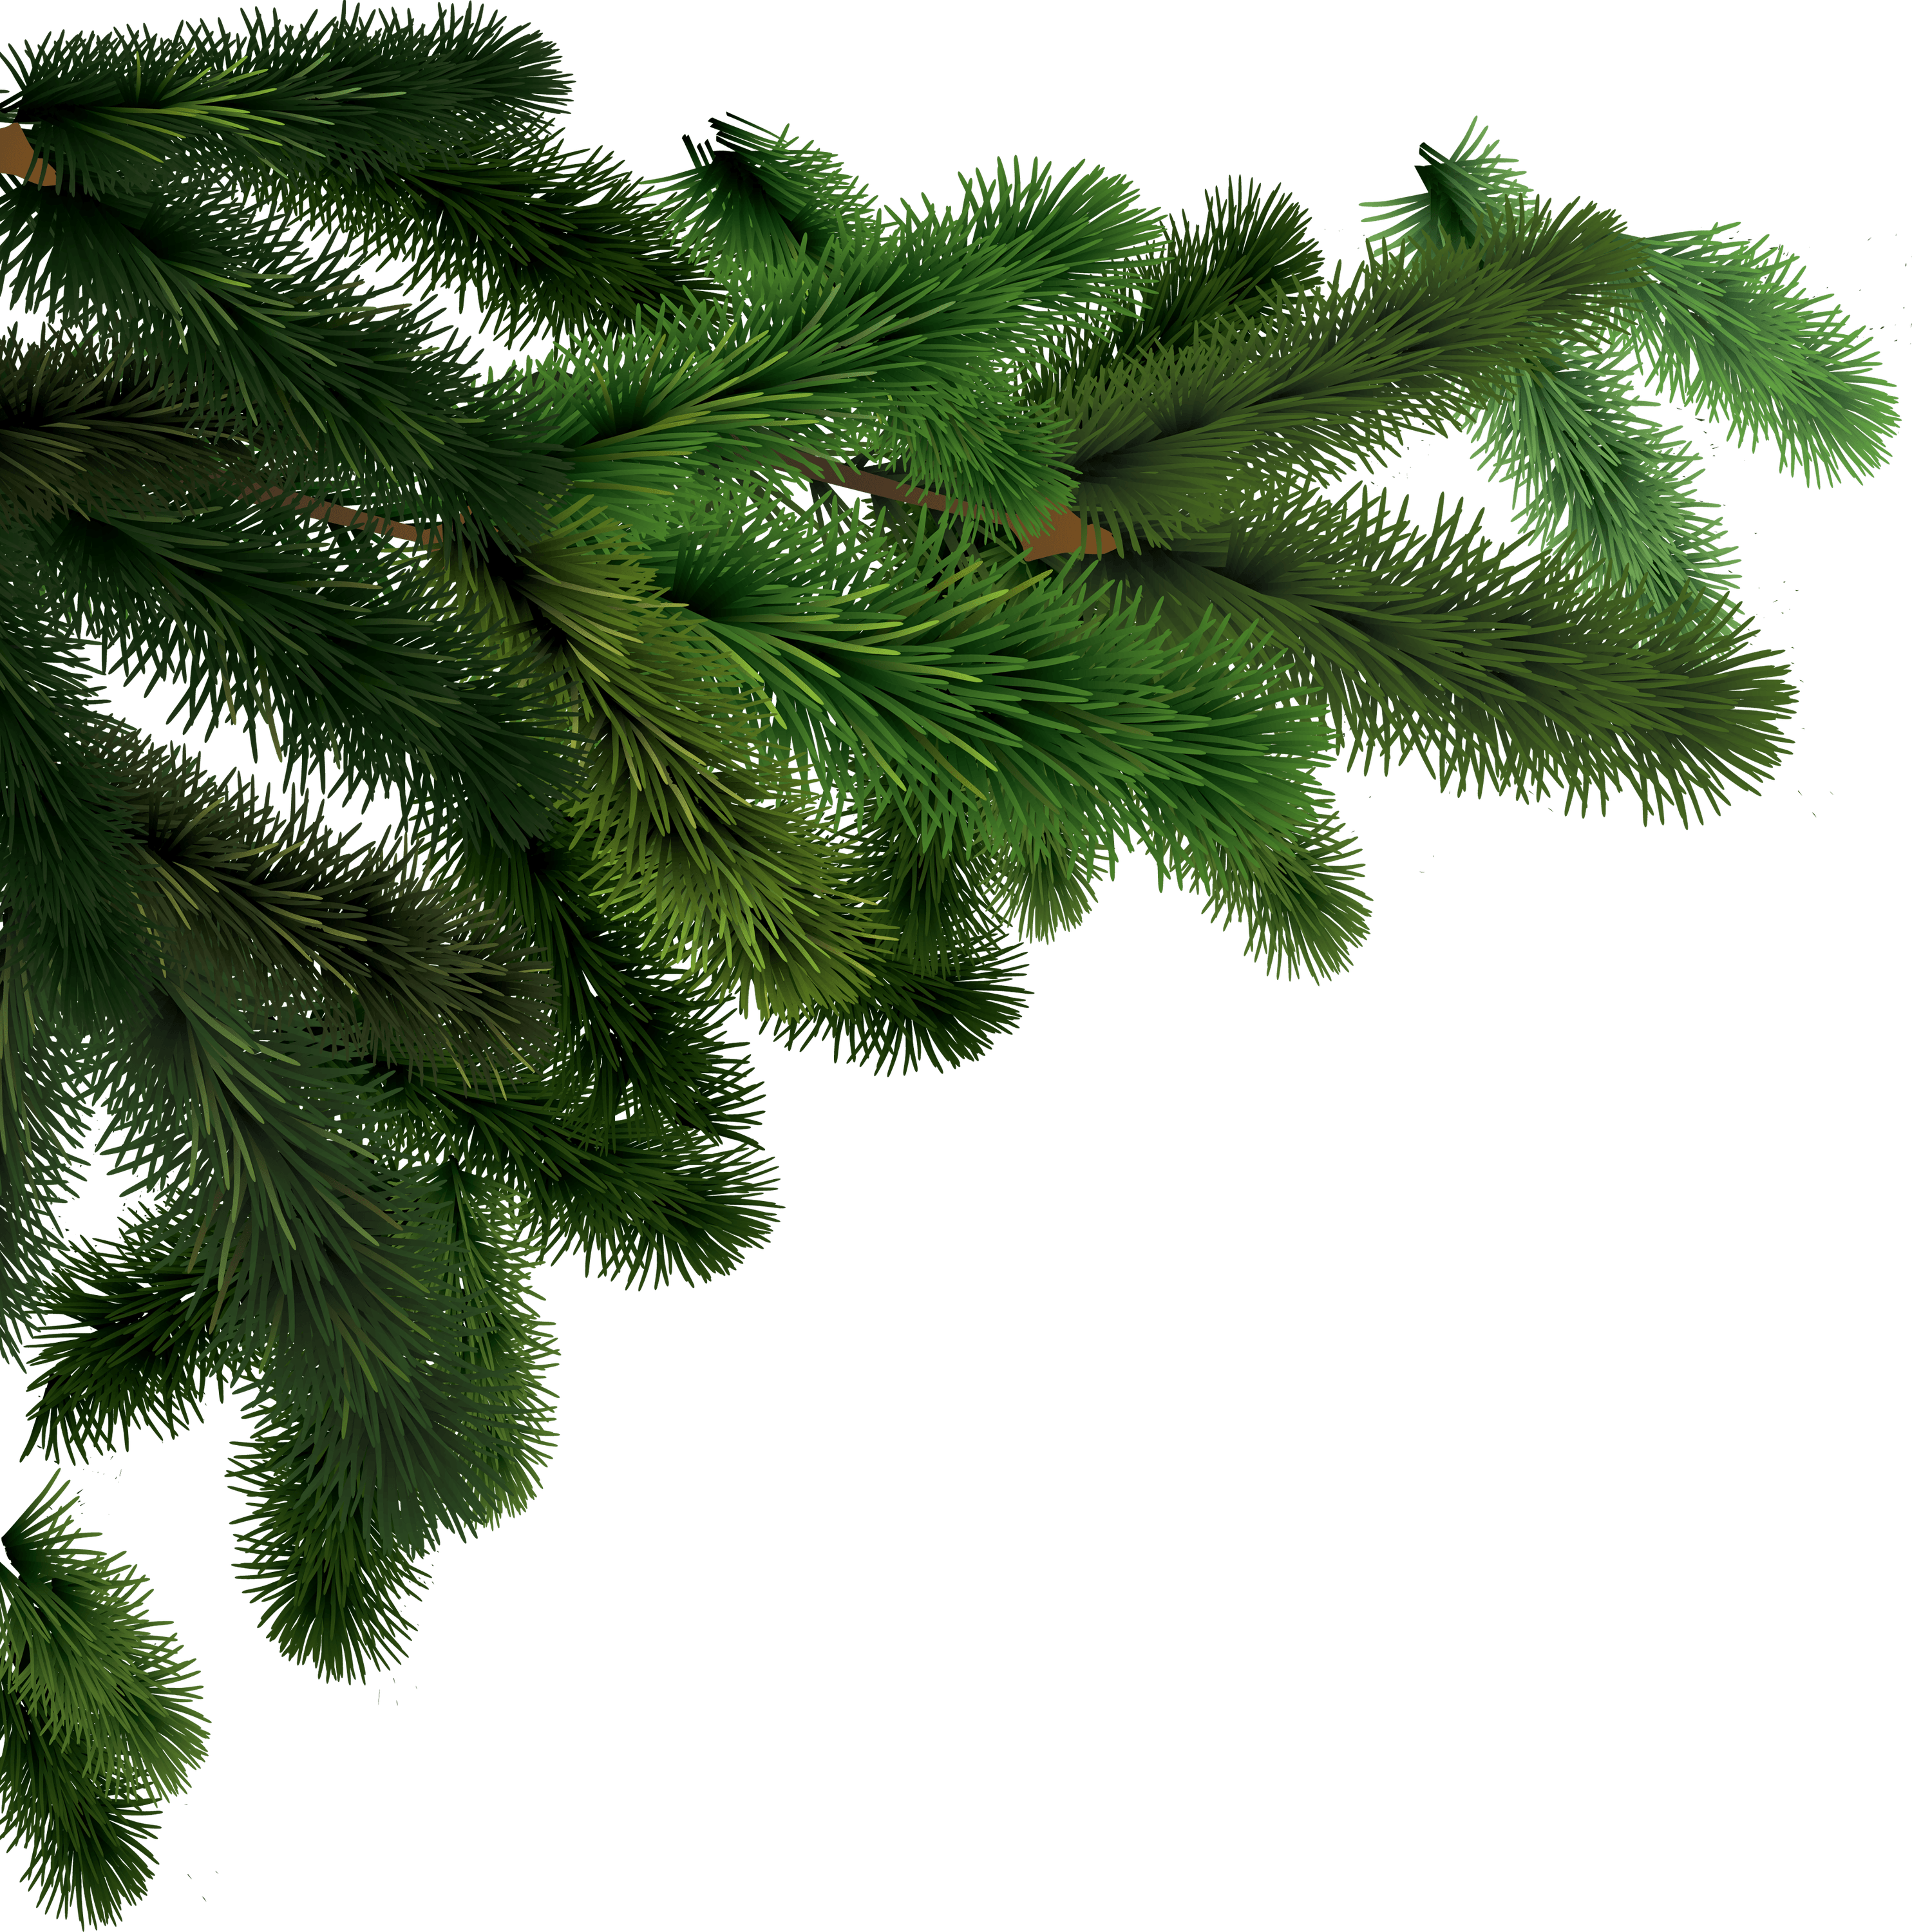 Fir tree clipart png black and white Side Branches Fir Tree transparent PNG - StickPNG png black and white